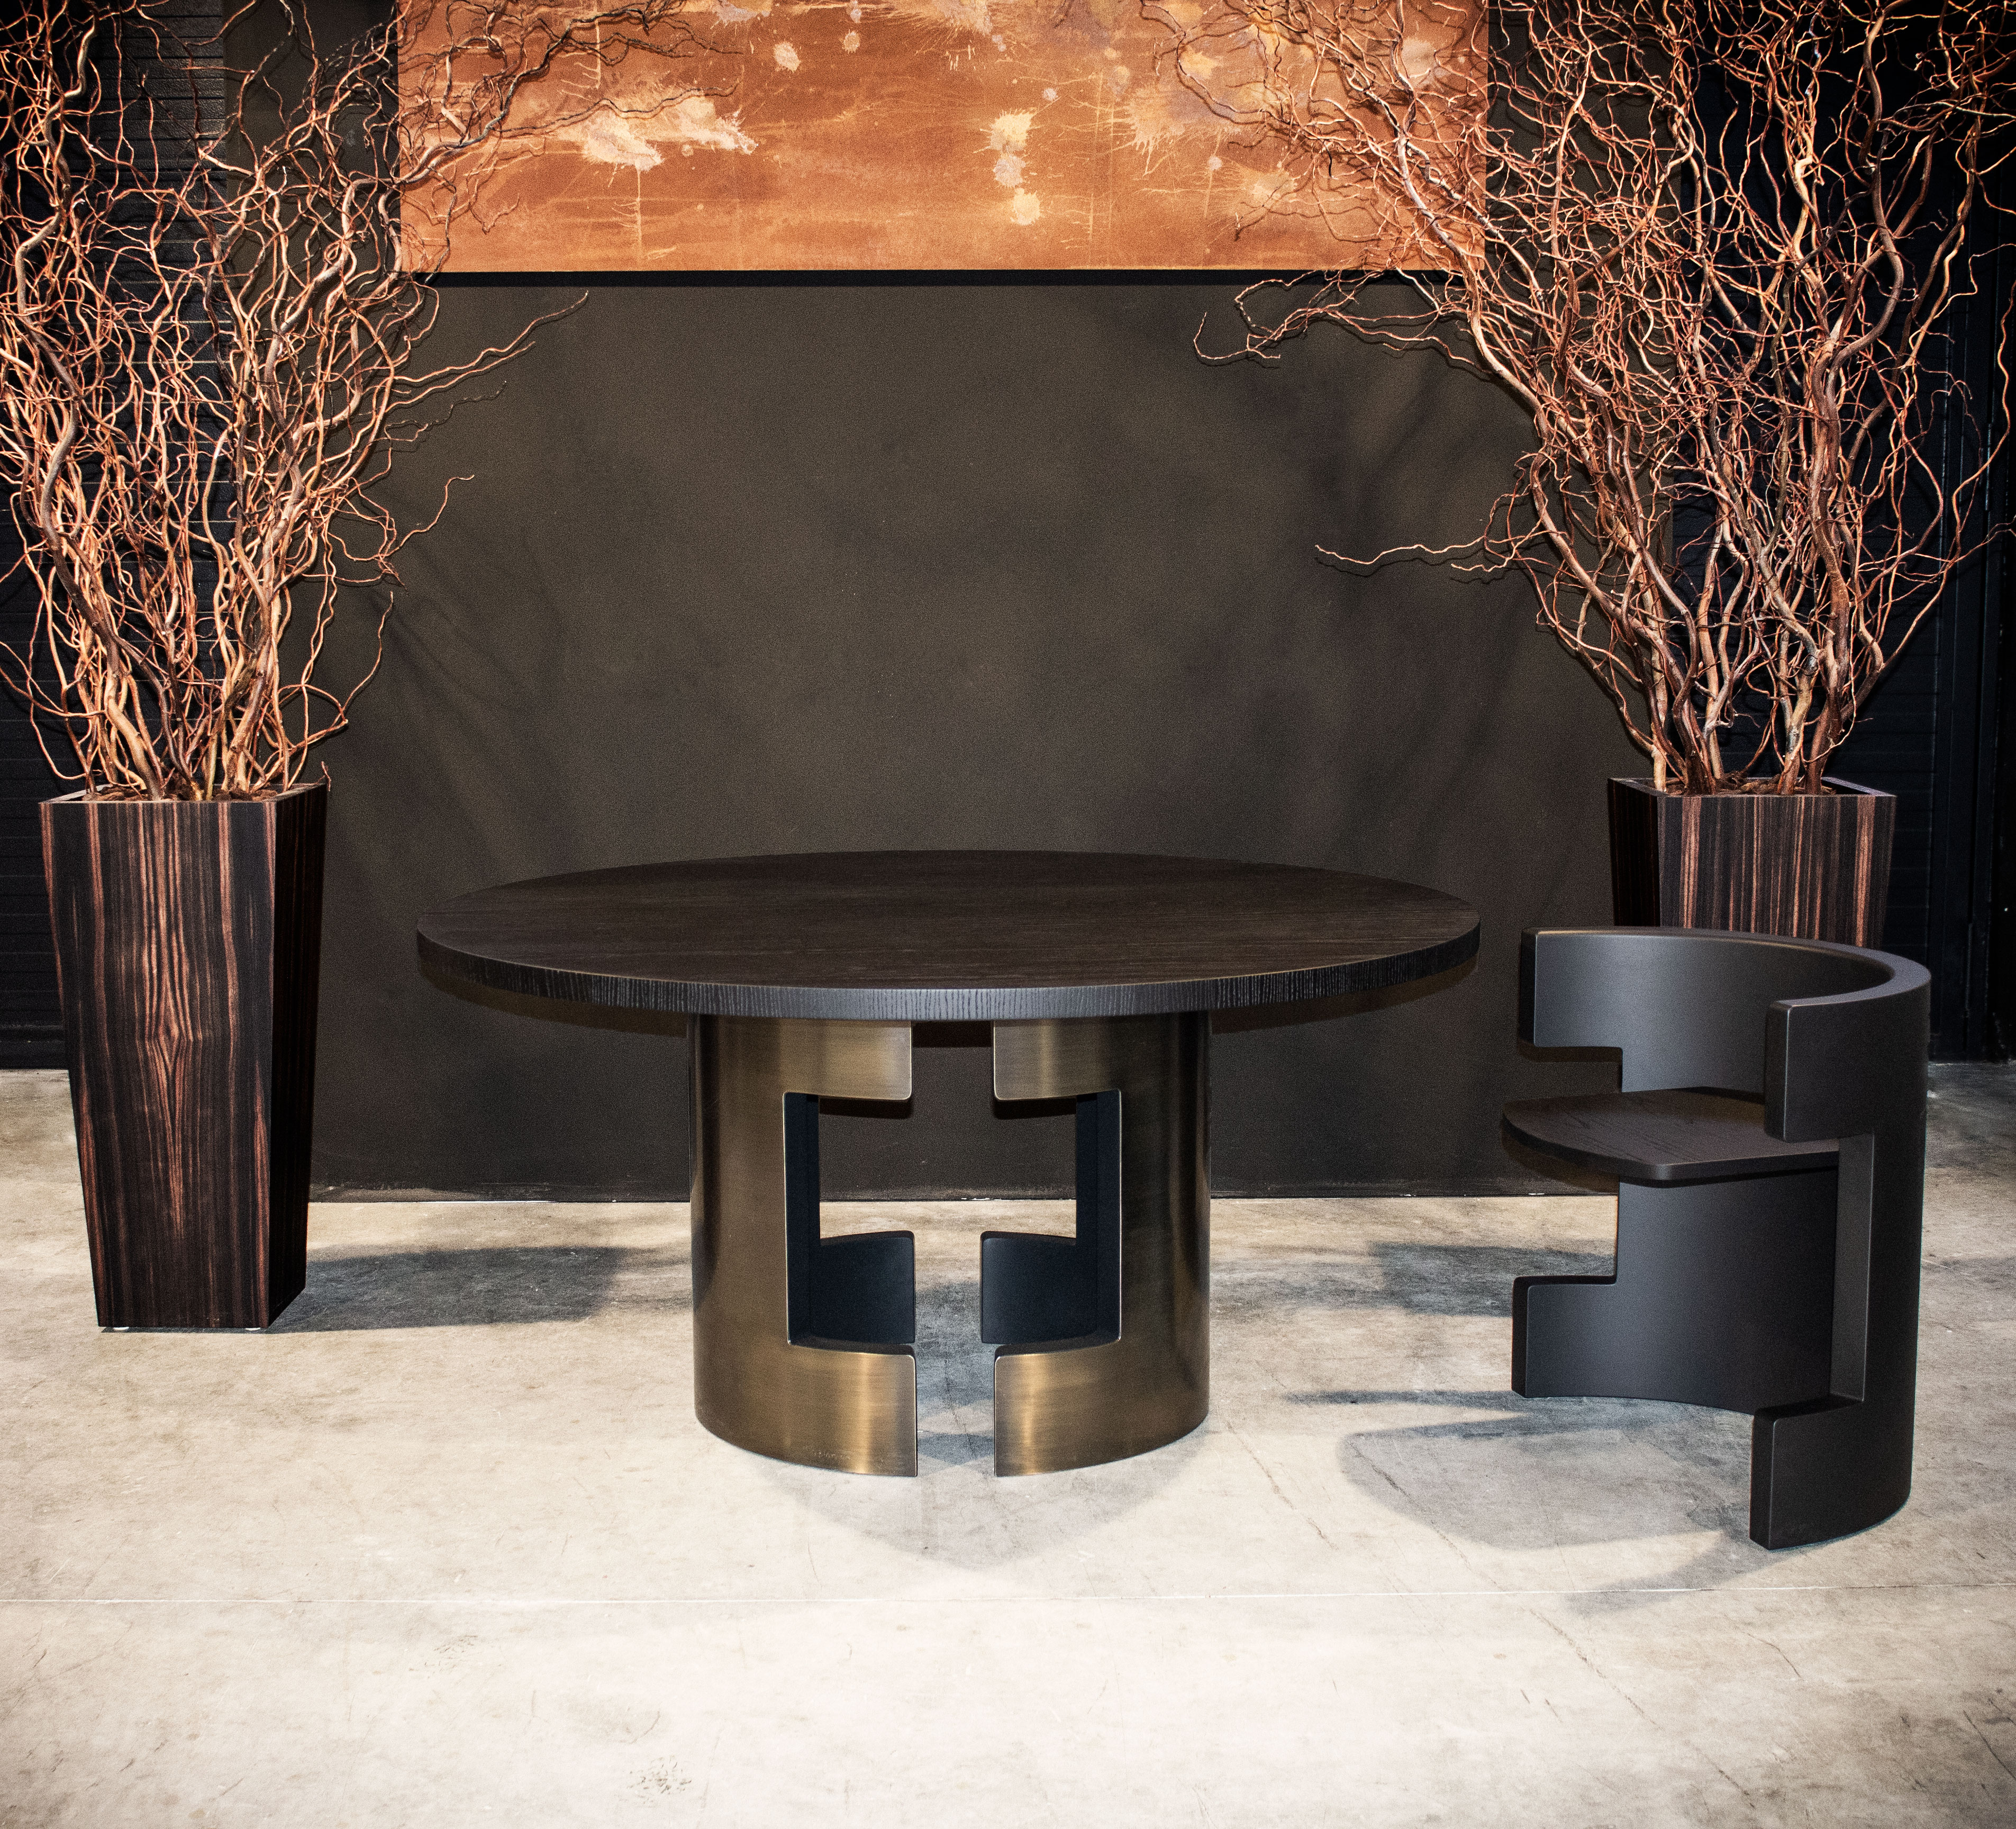 polo + -seat in matt carbon black lacquered wood and black oak